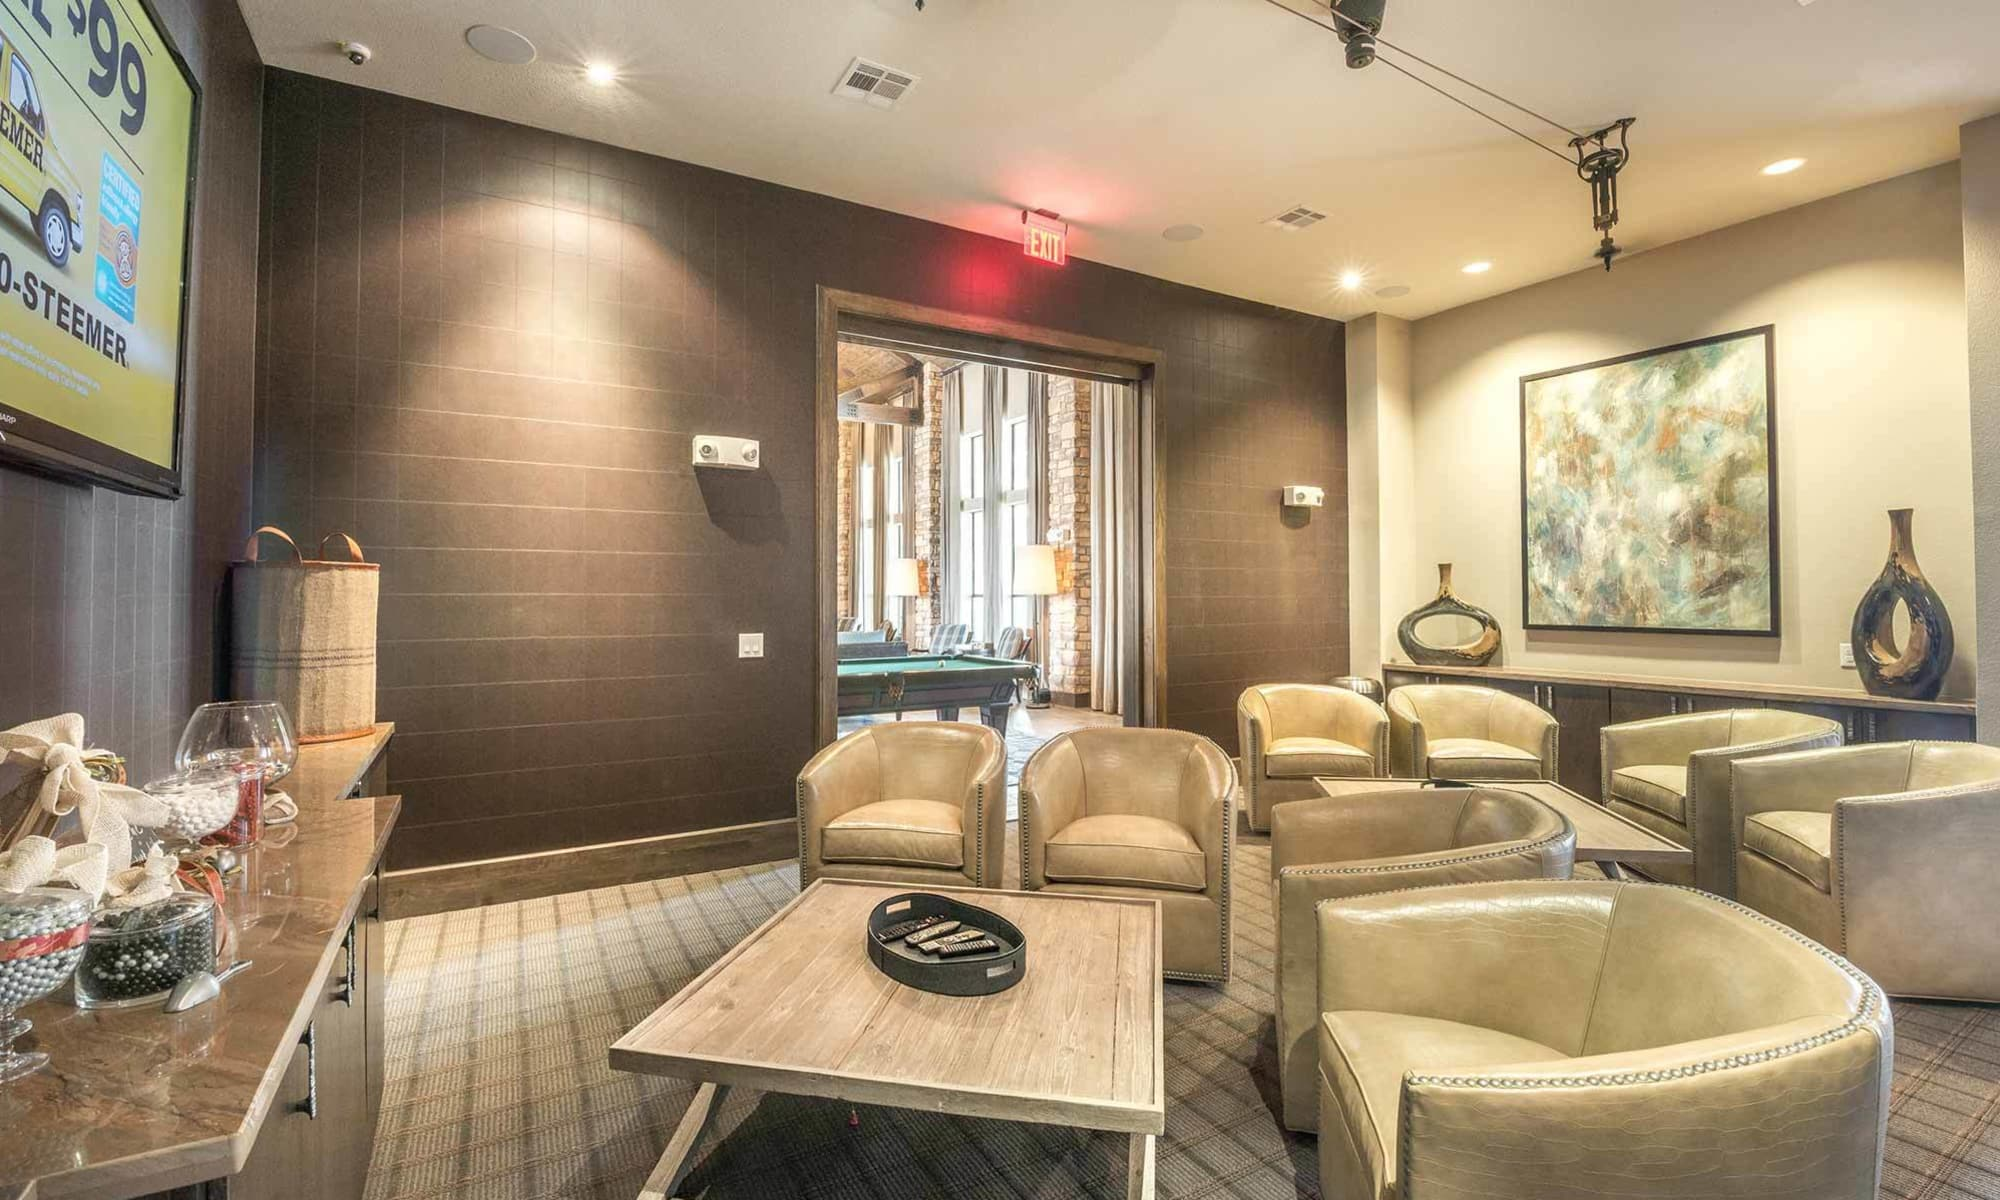 Plenty of comfortable seating in The Abbey at Spring Town Center clubhouse for viewing the big game on the widescreen tv